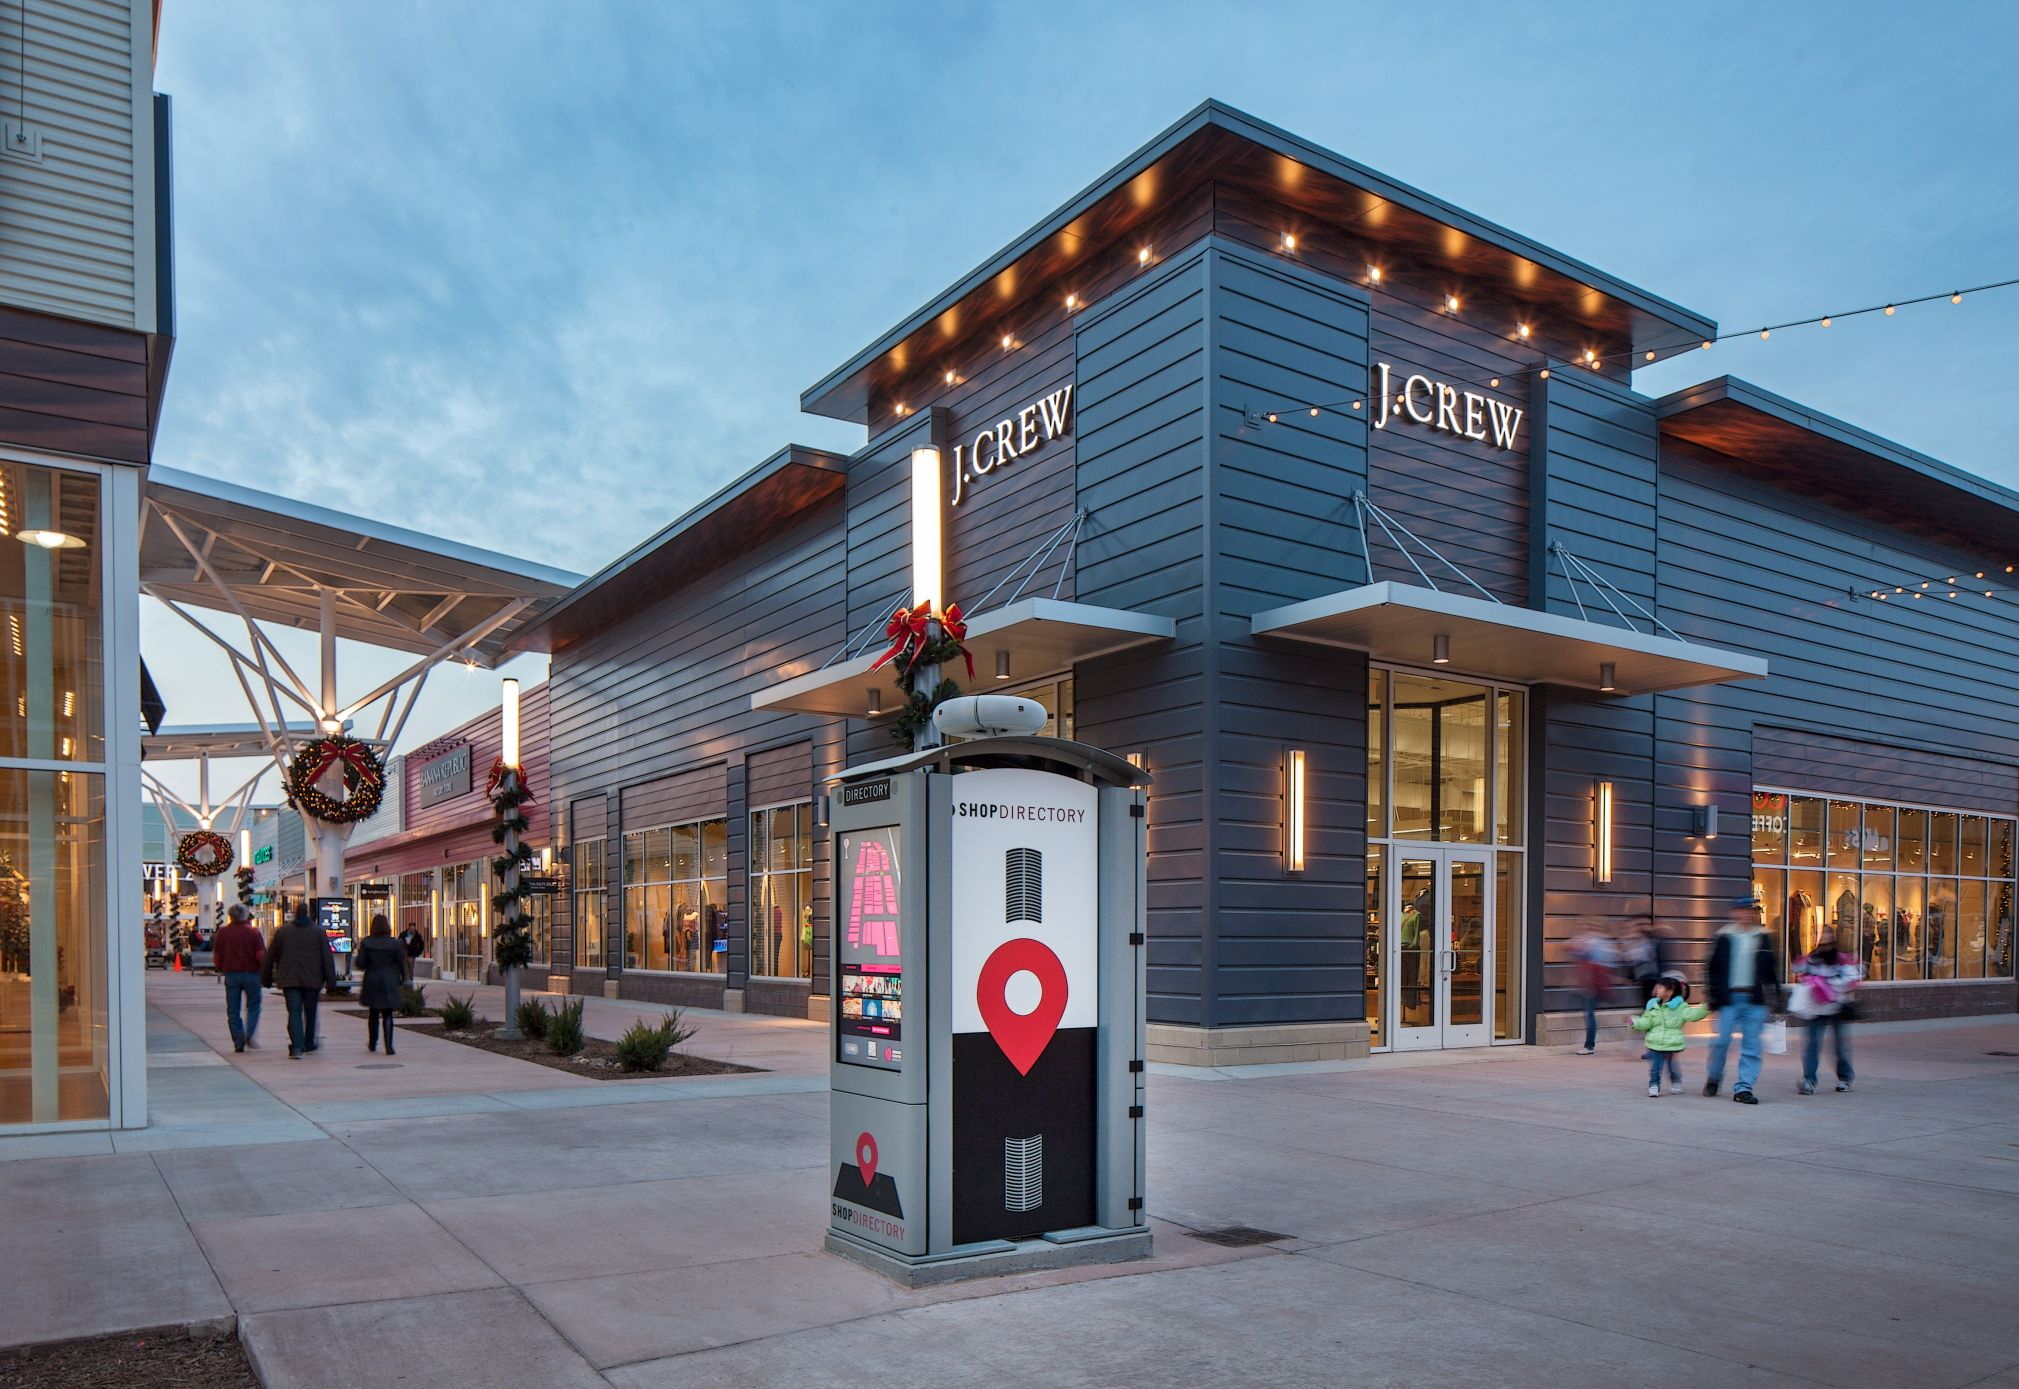 2019 1389 retail exterior pinterest for Exterior design of a retail store